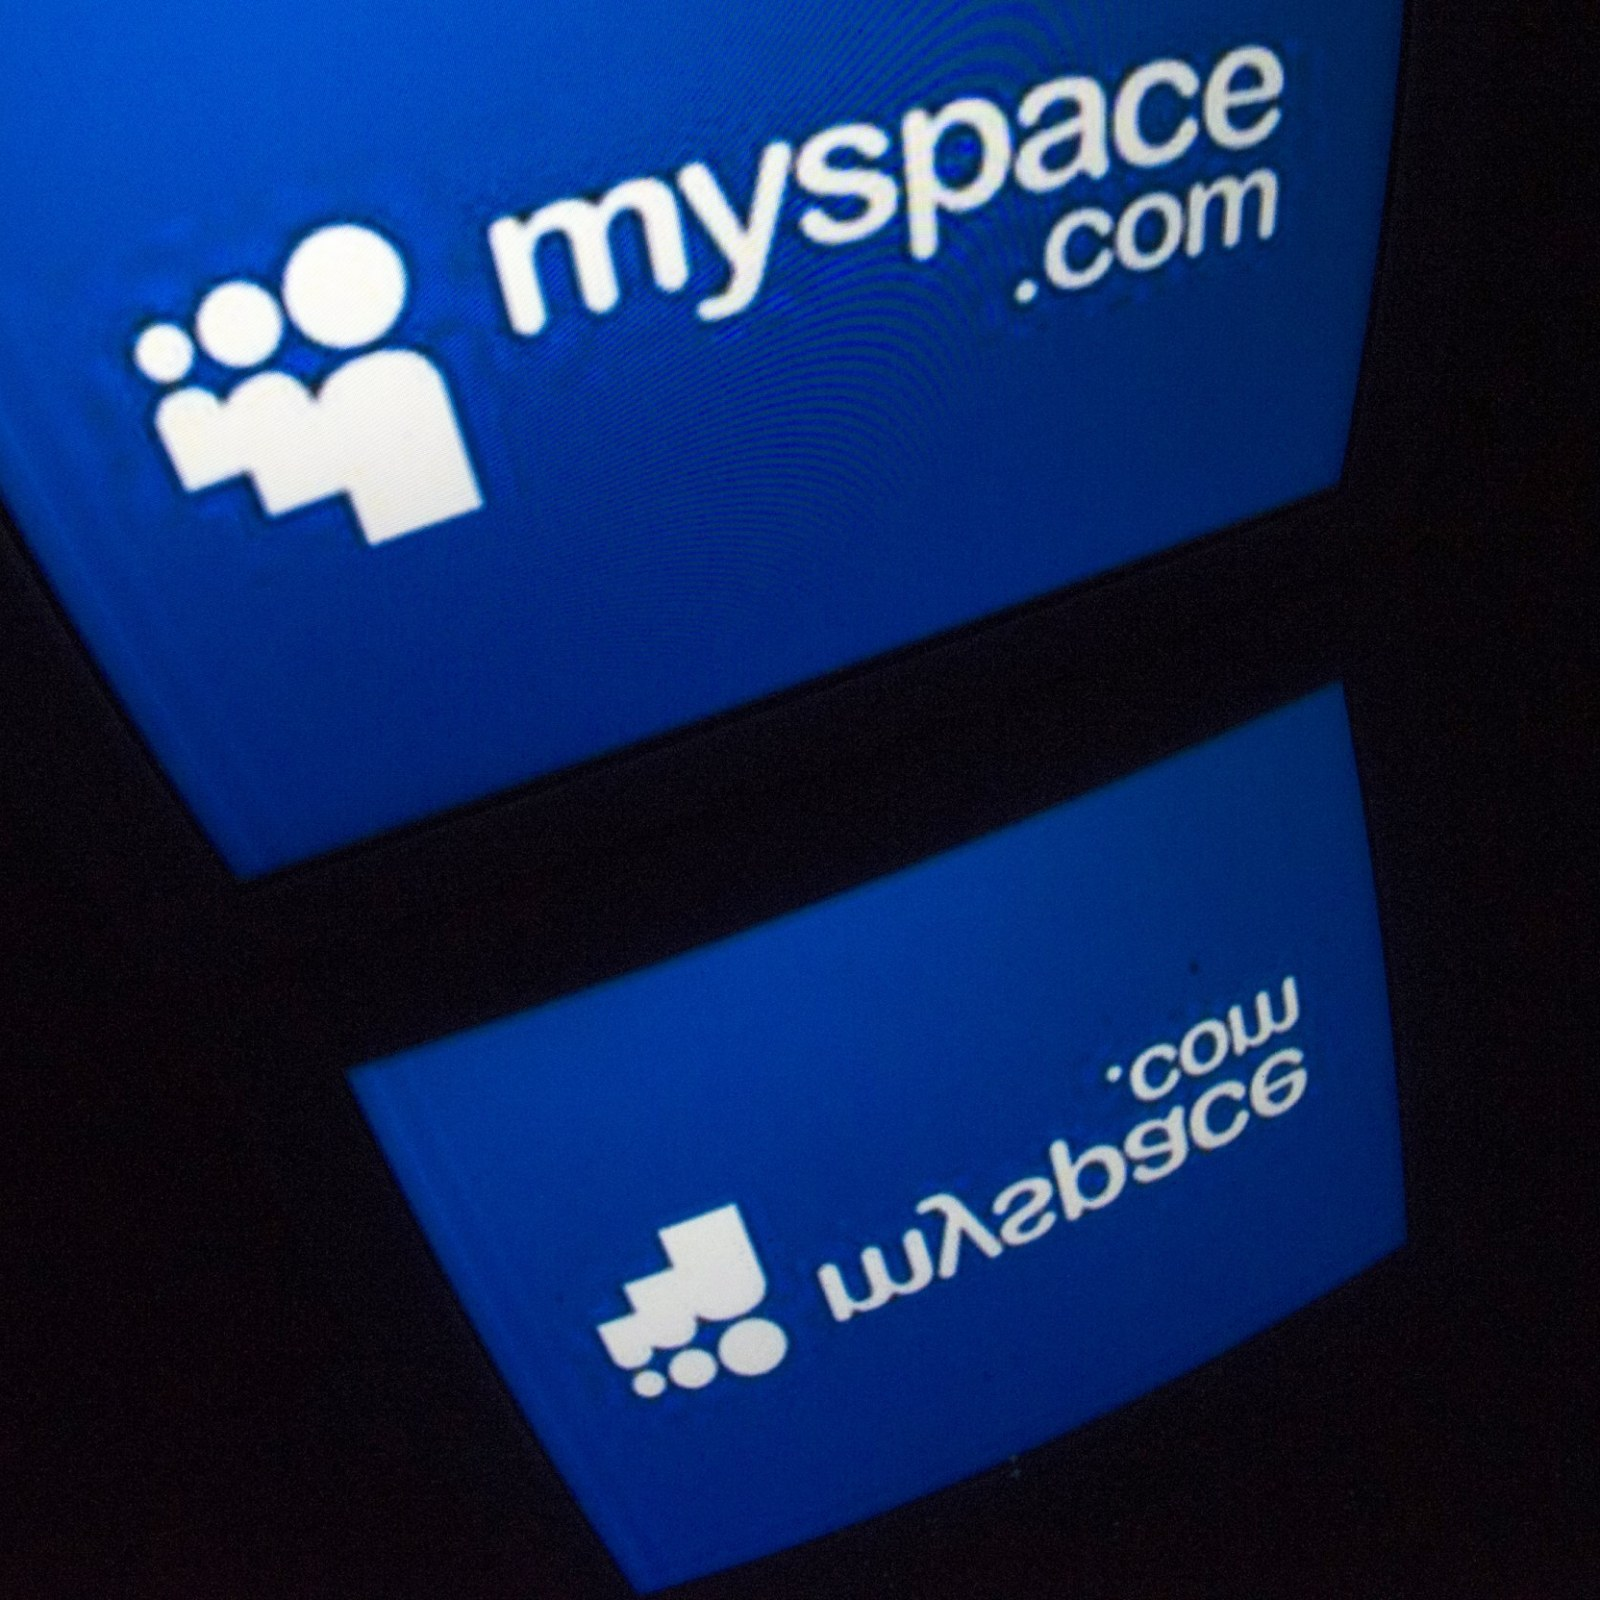 Myspace Says Your Old Music and Photos May Be Lost Forever Due to